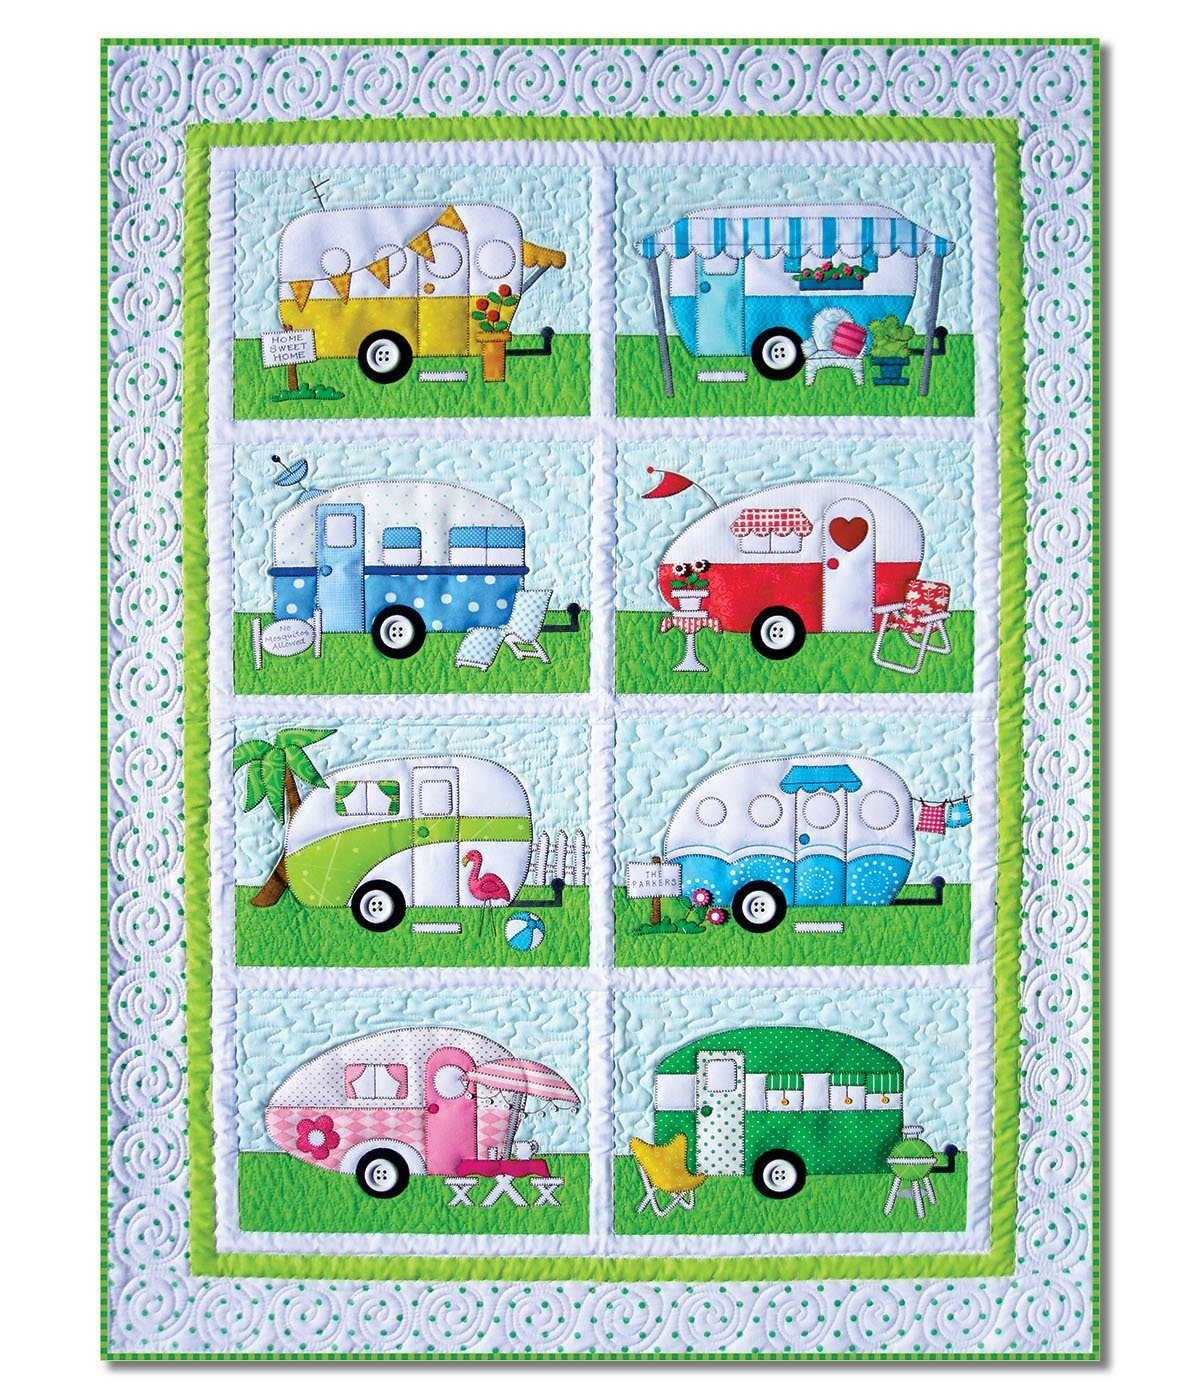 Campers - All Blocks - Laser Cut Kit by Lone Star Laser Co